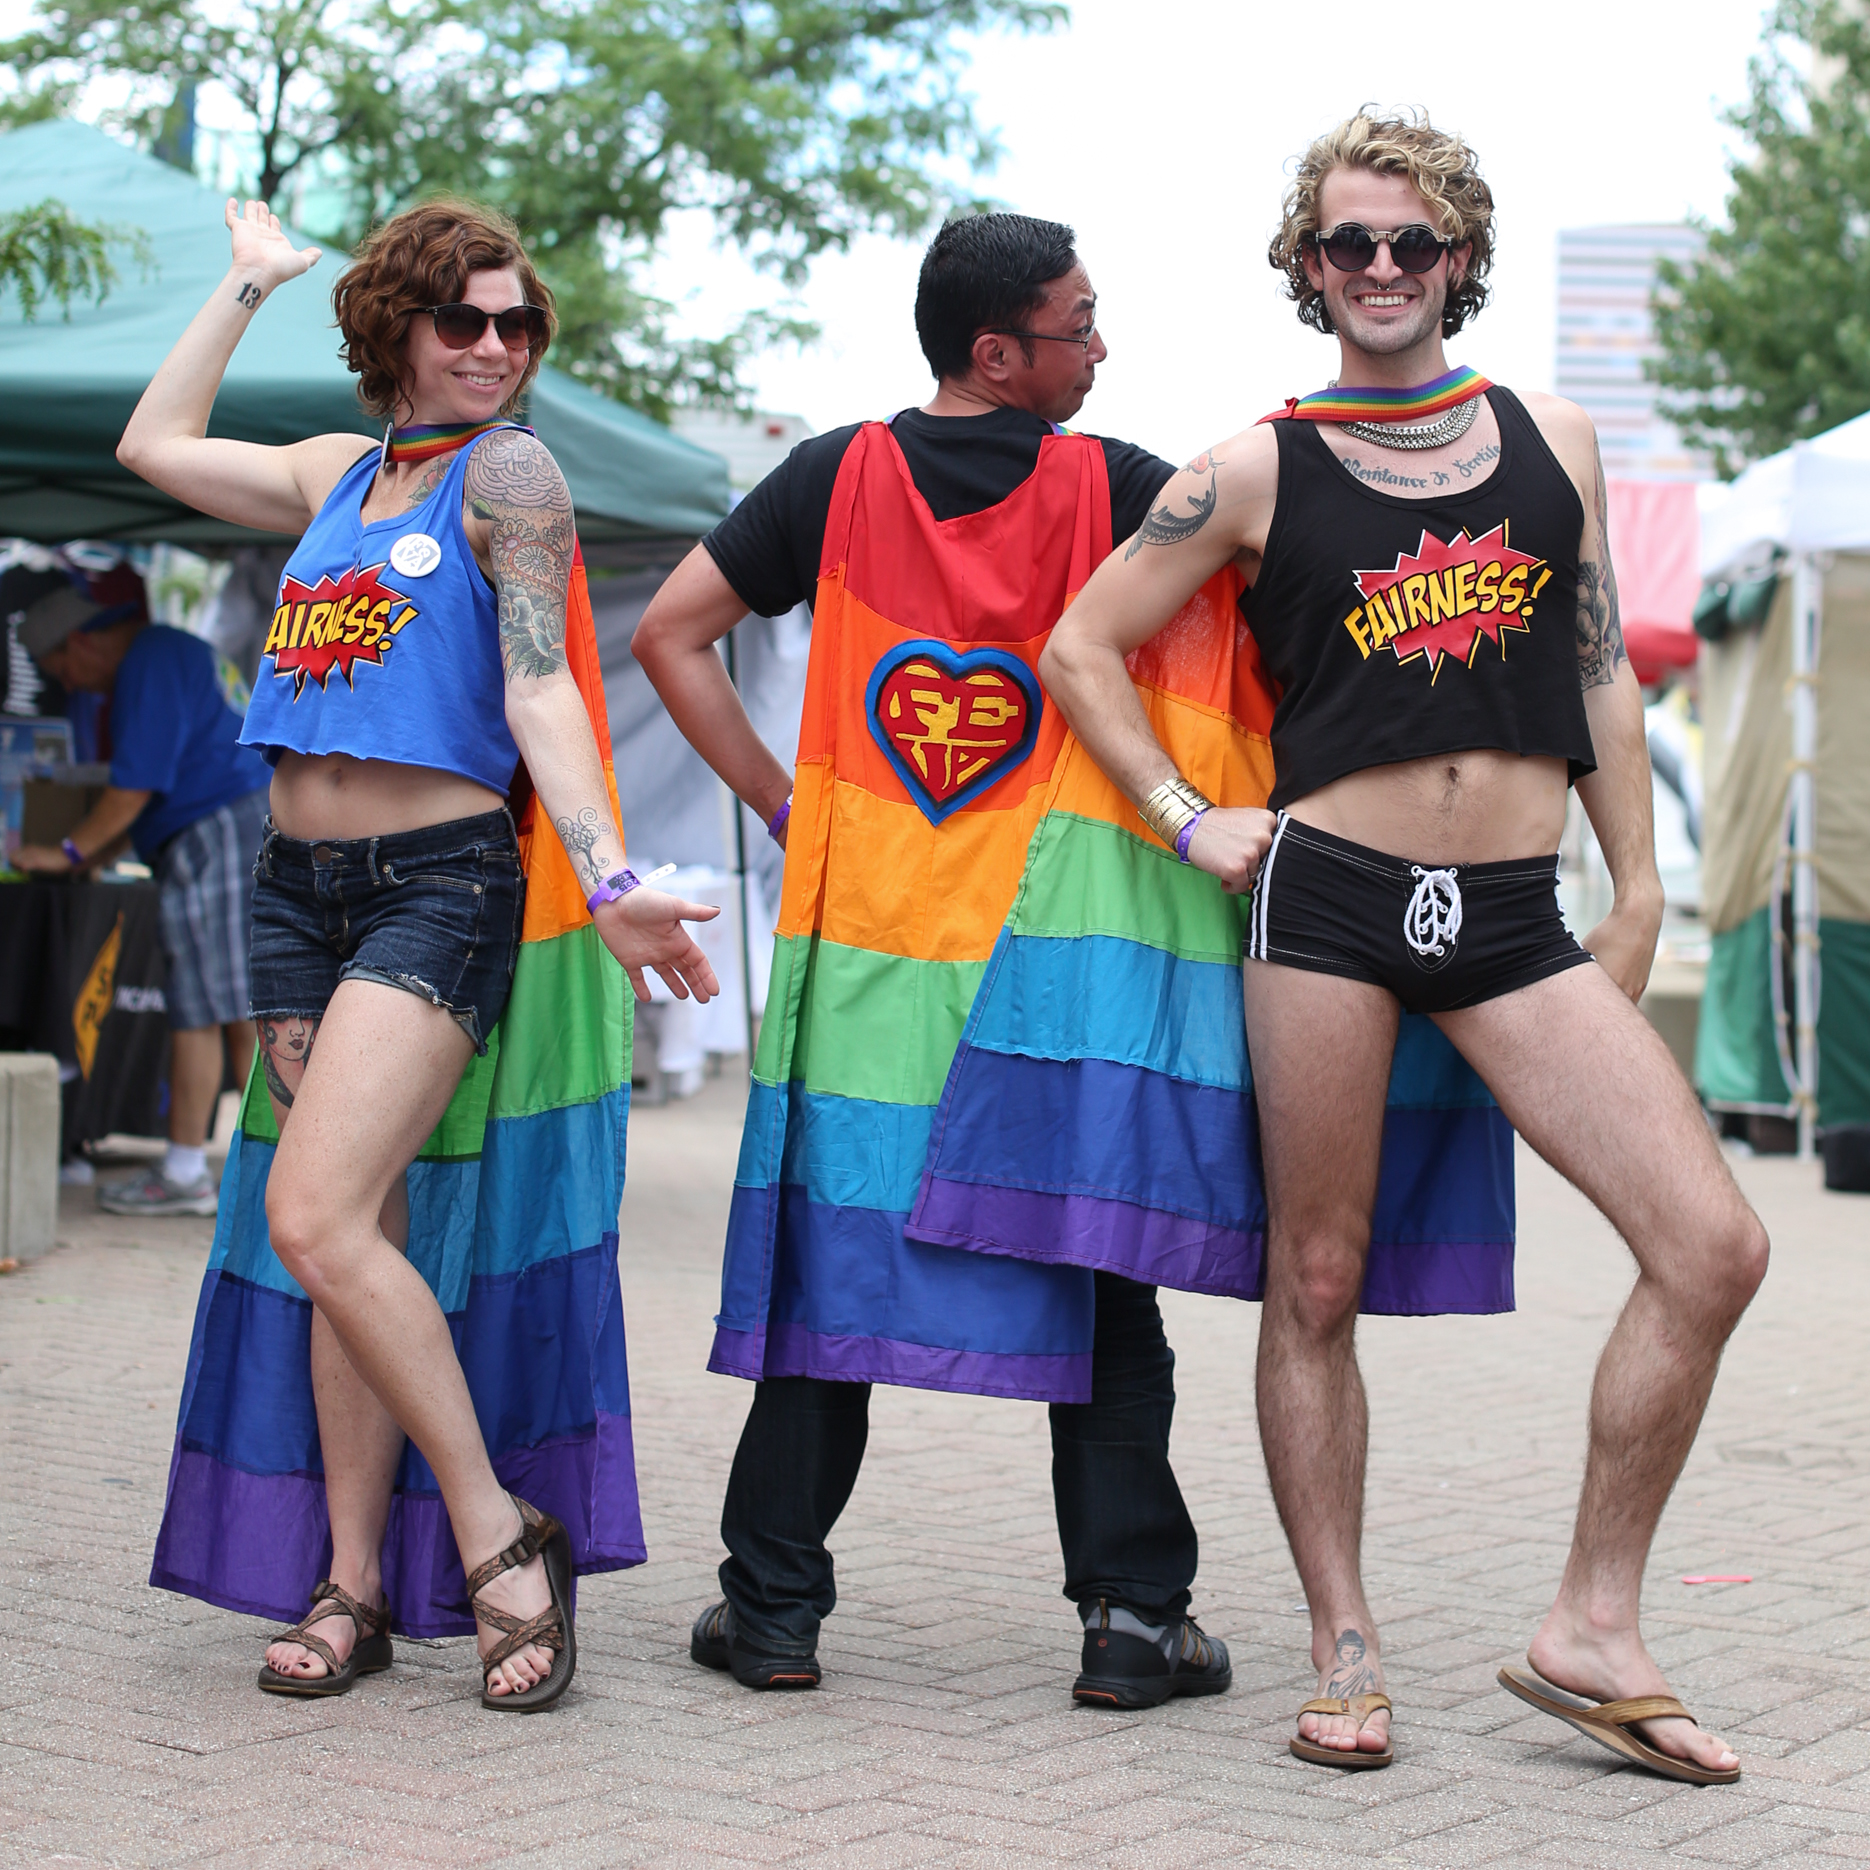 PRIDE W-FEVA 2015 EDITED CRYSTAL LUDWICK PHOTO (51 of 83).jpg